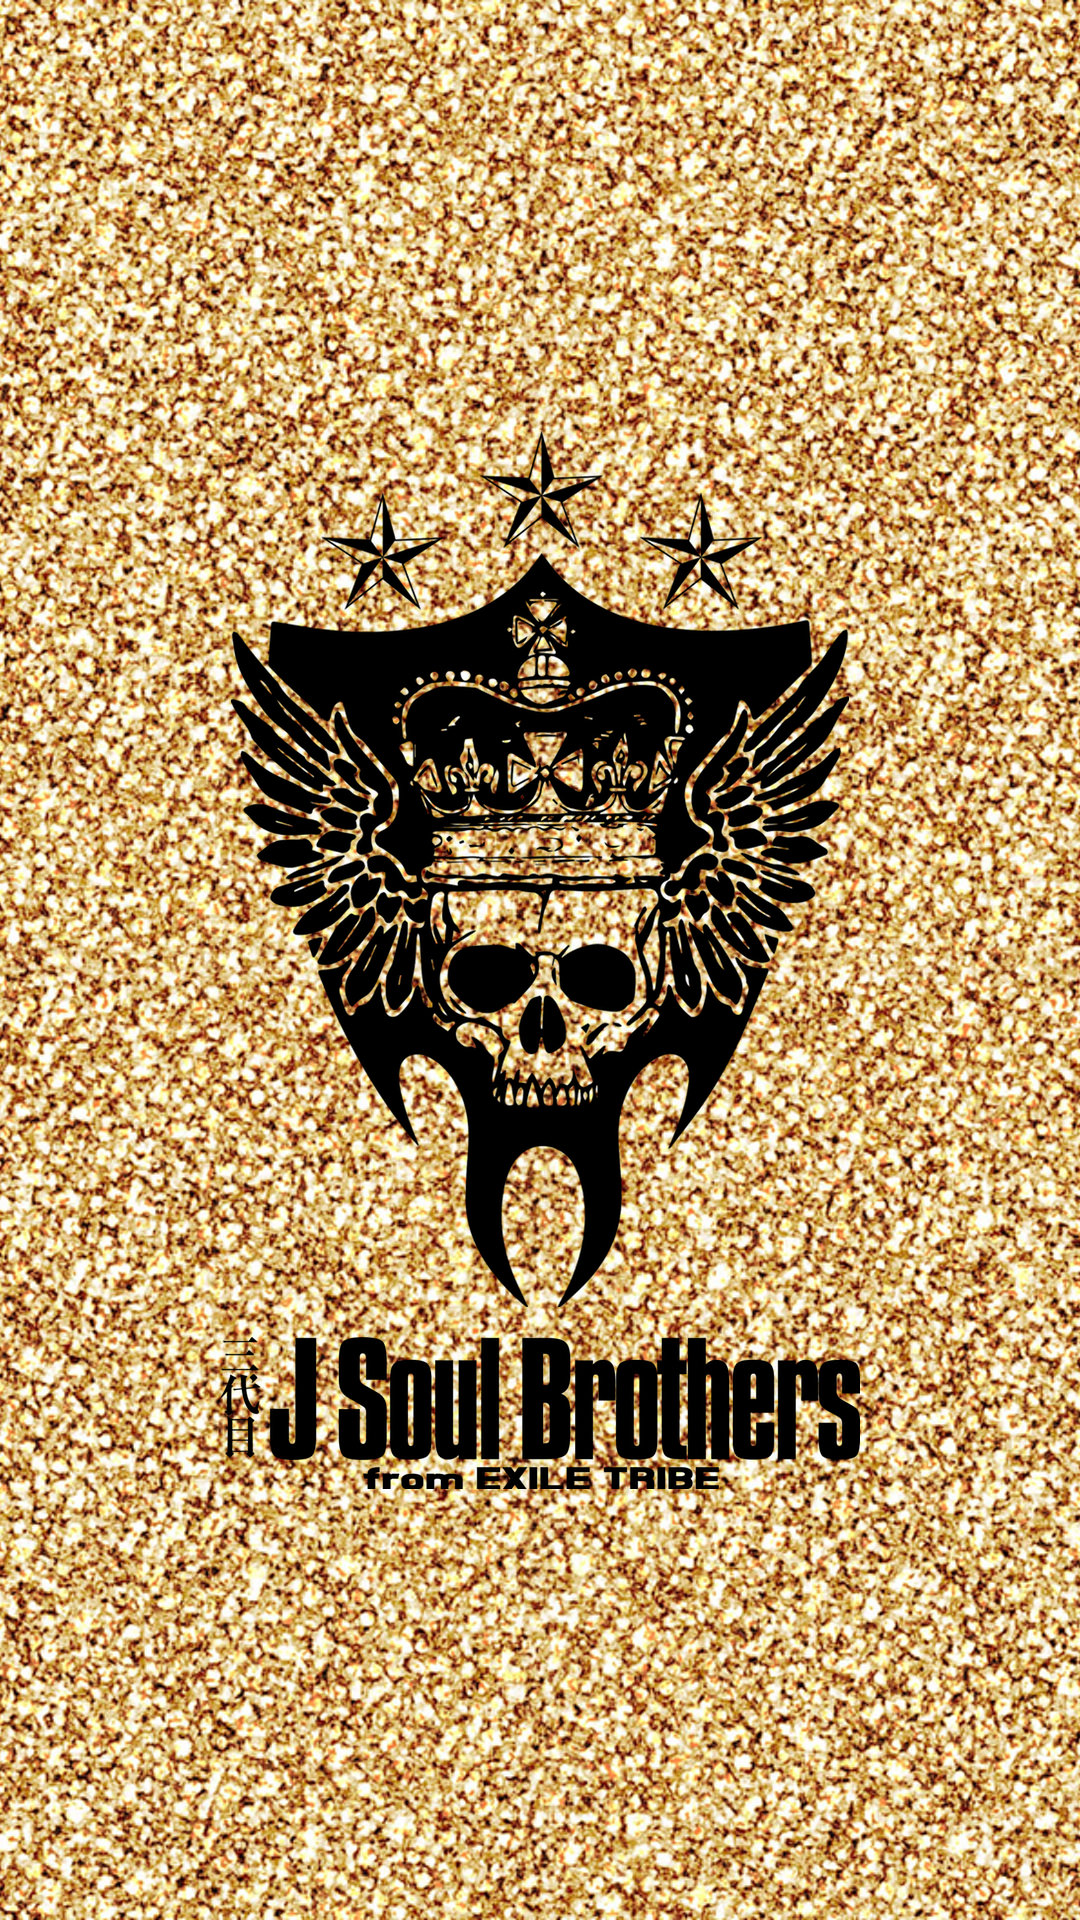 3jsb i20 - 三代目 J SOUL BROTHERSの高画質スマホ壁紙40枚 [iPhone&Androidに対応]